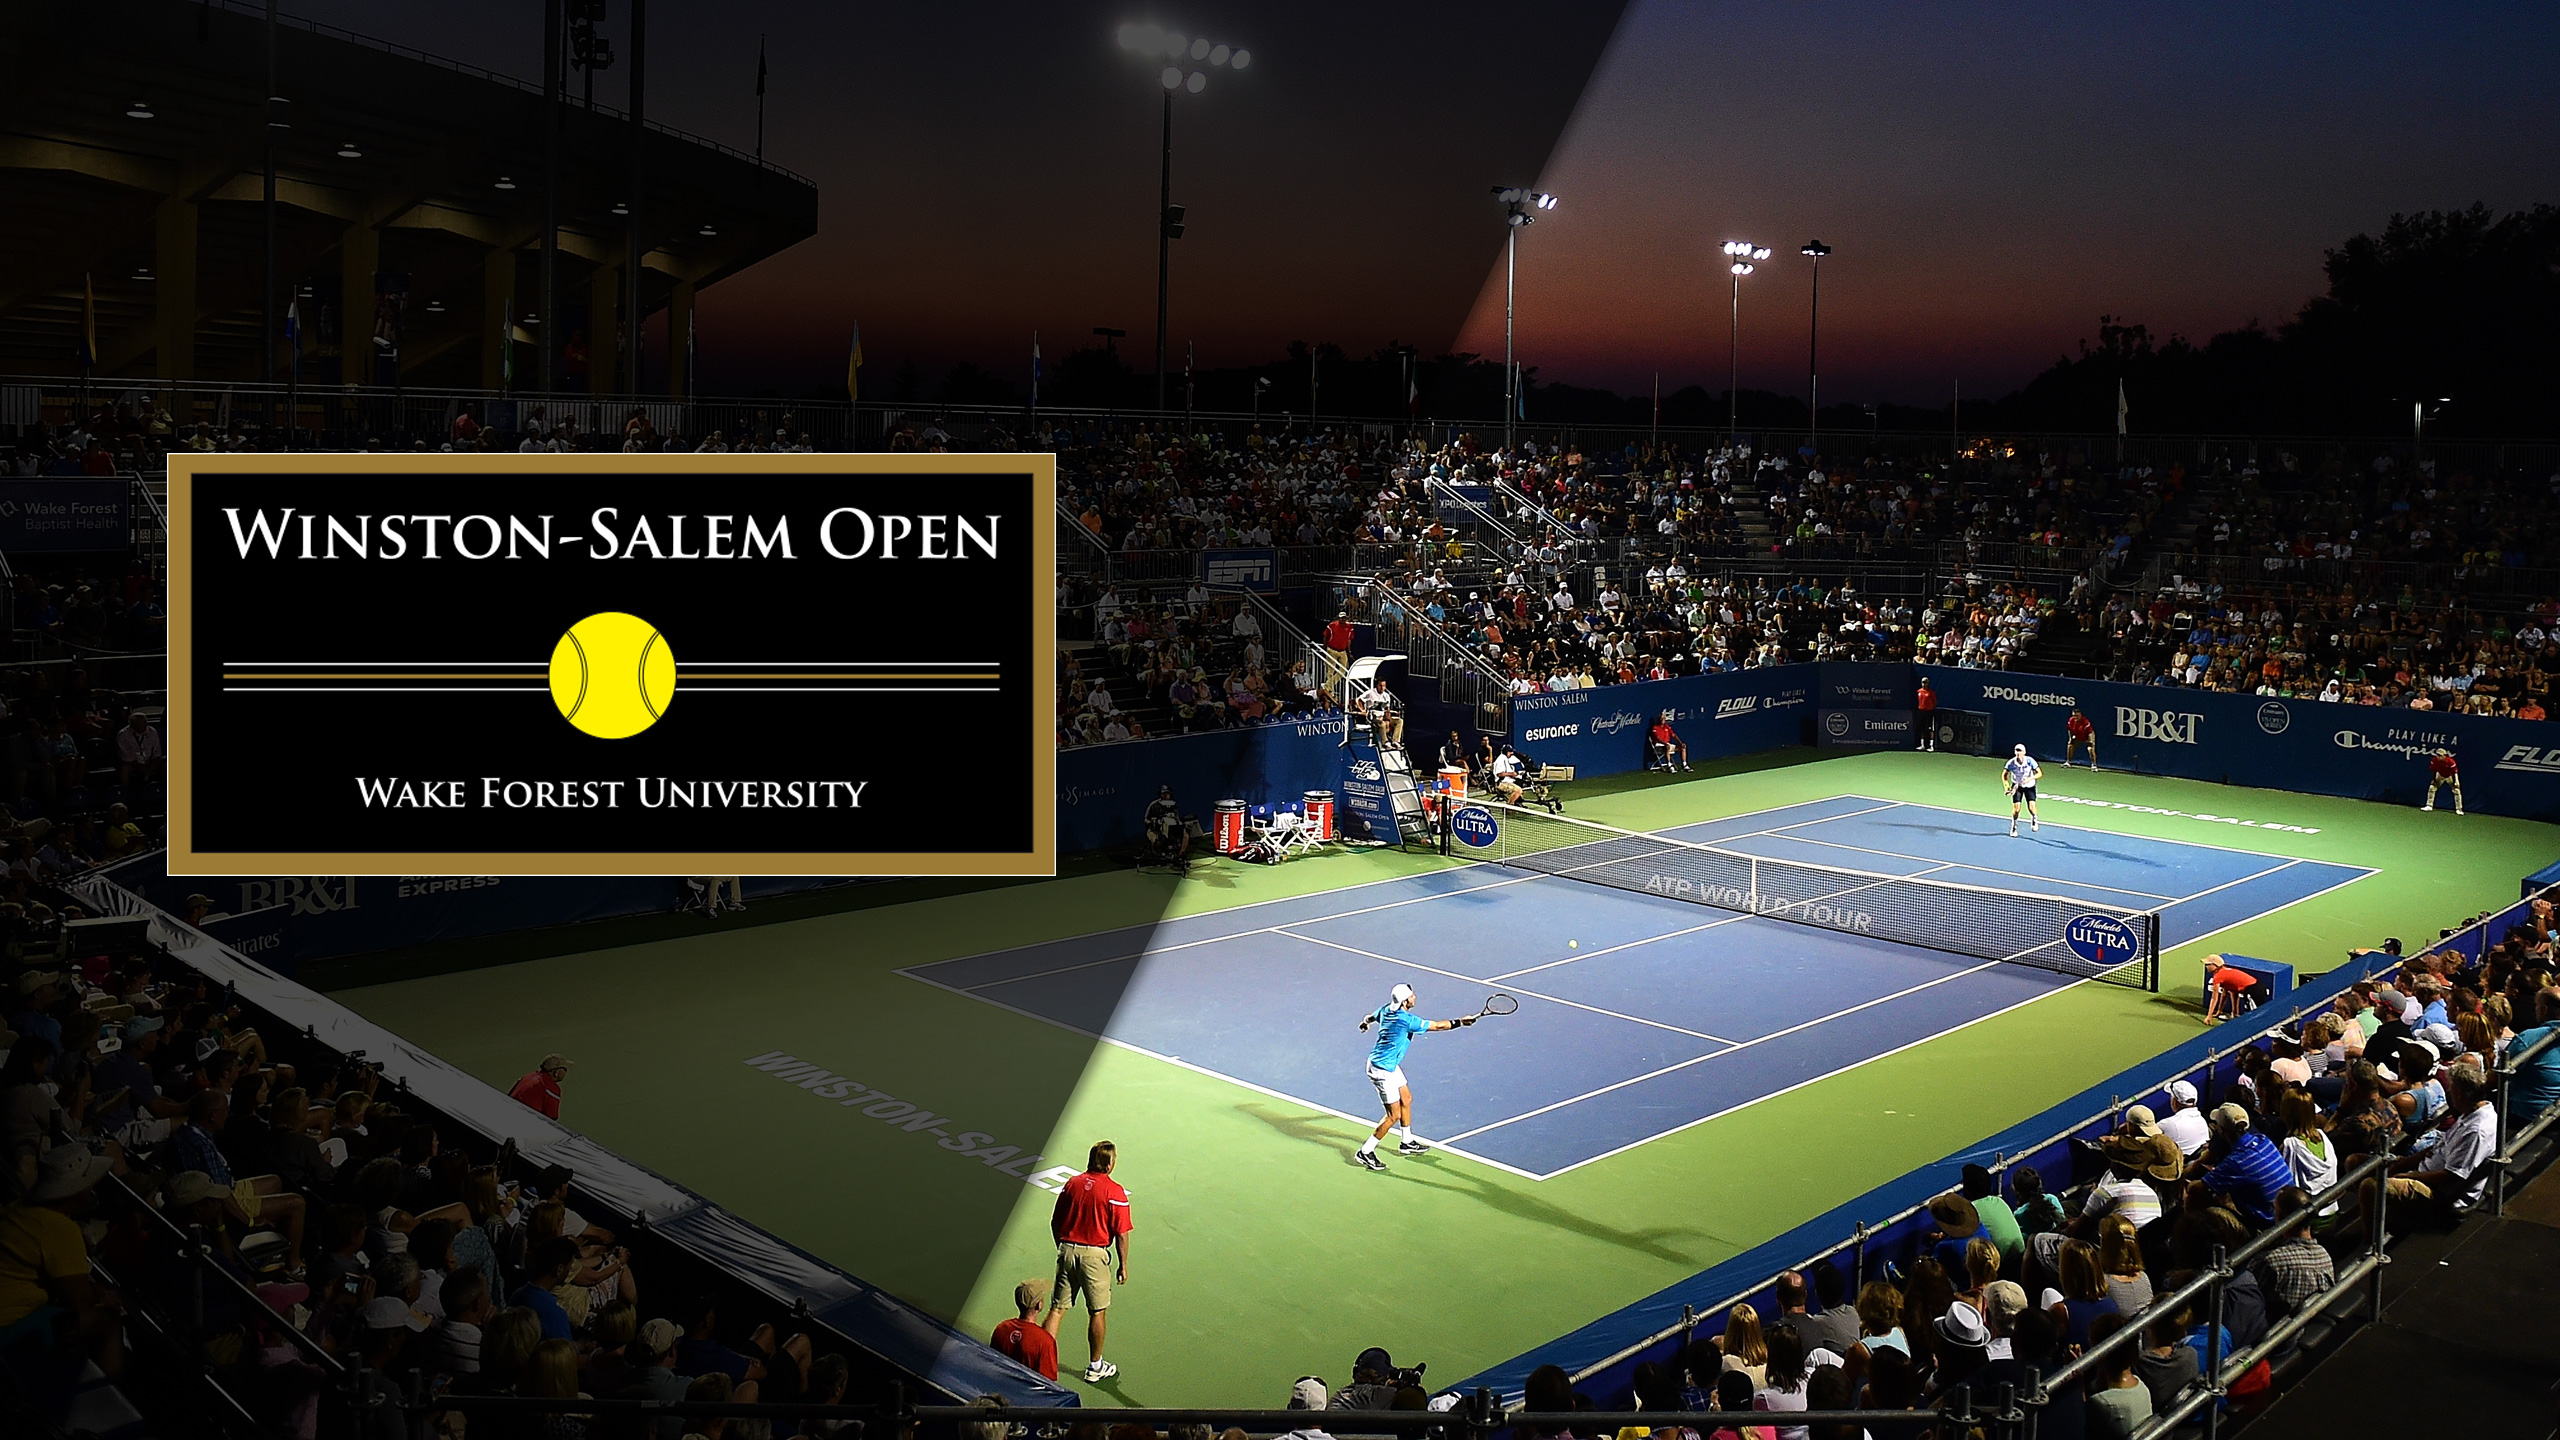 2018 US Open Series - Winston-Salem Open (Second Round)